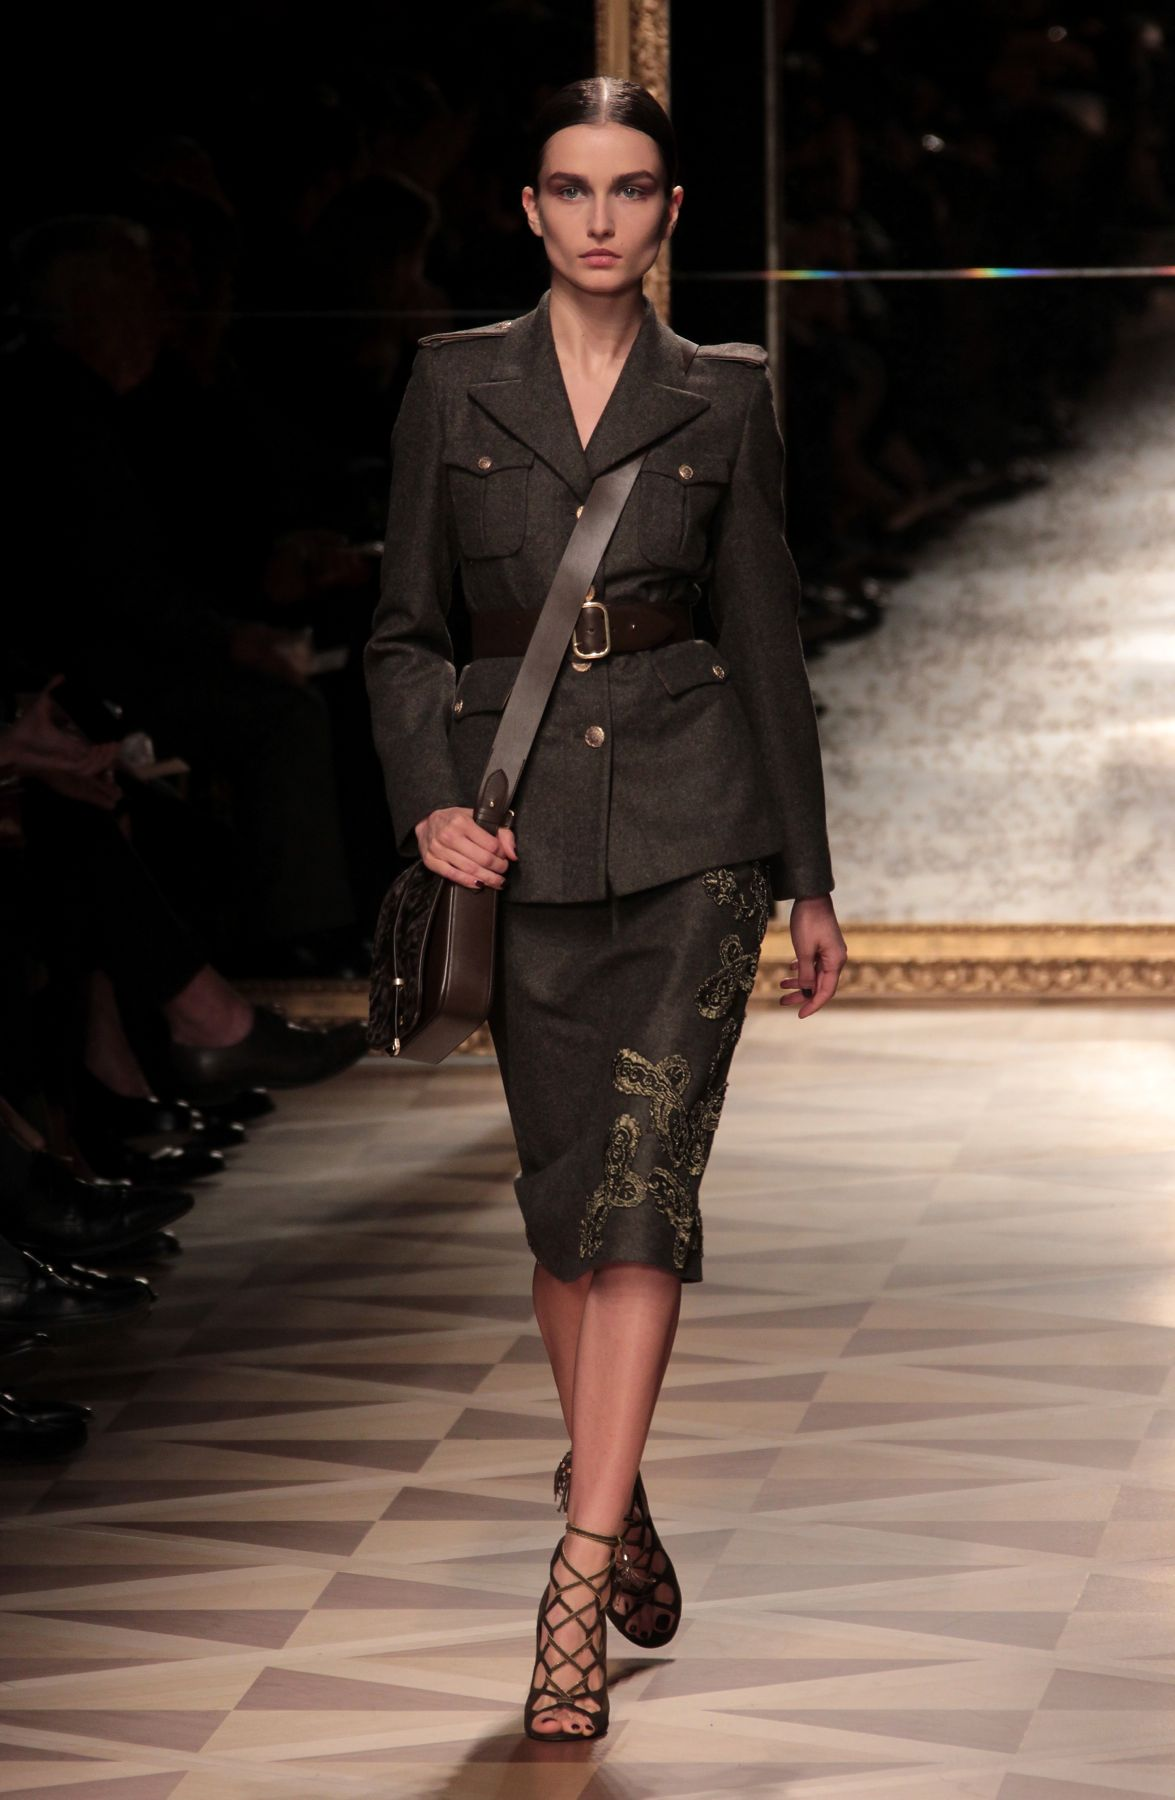 Salvatore Ferragamo Fall-Winter 2012 Women's collection